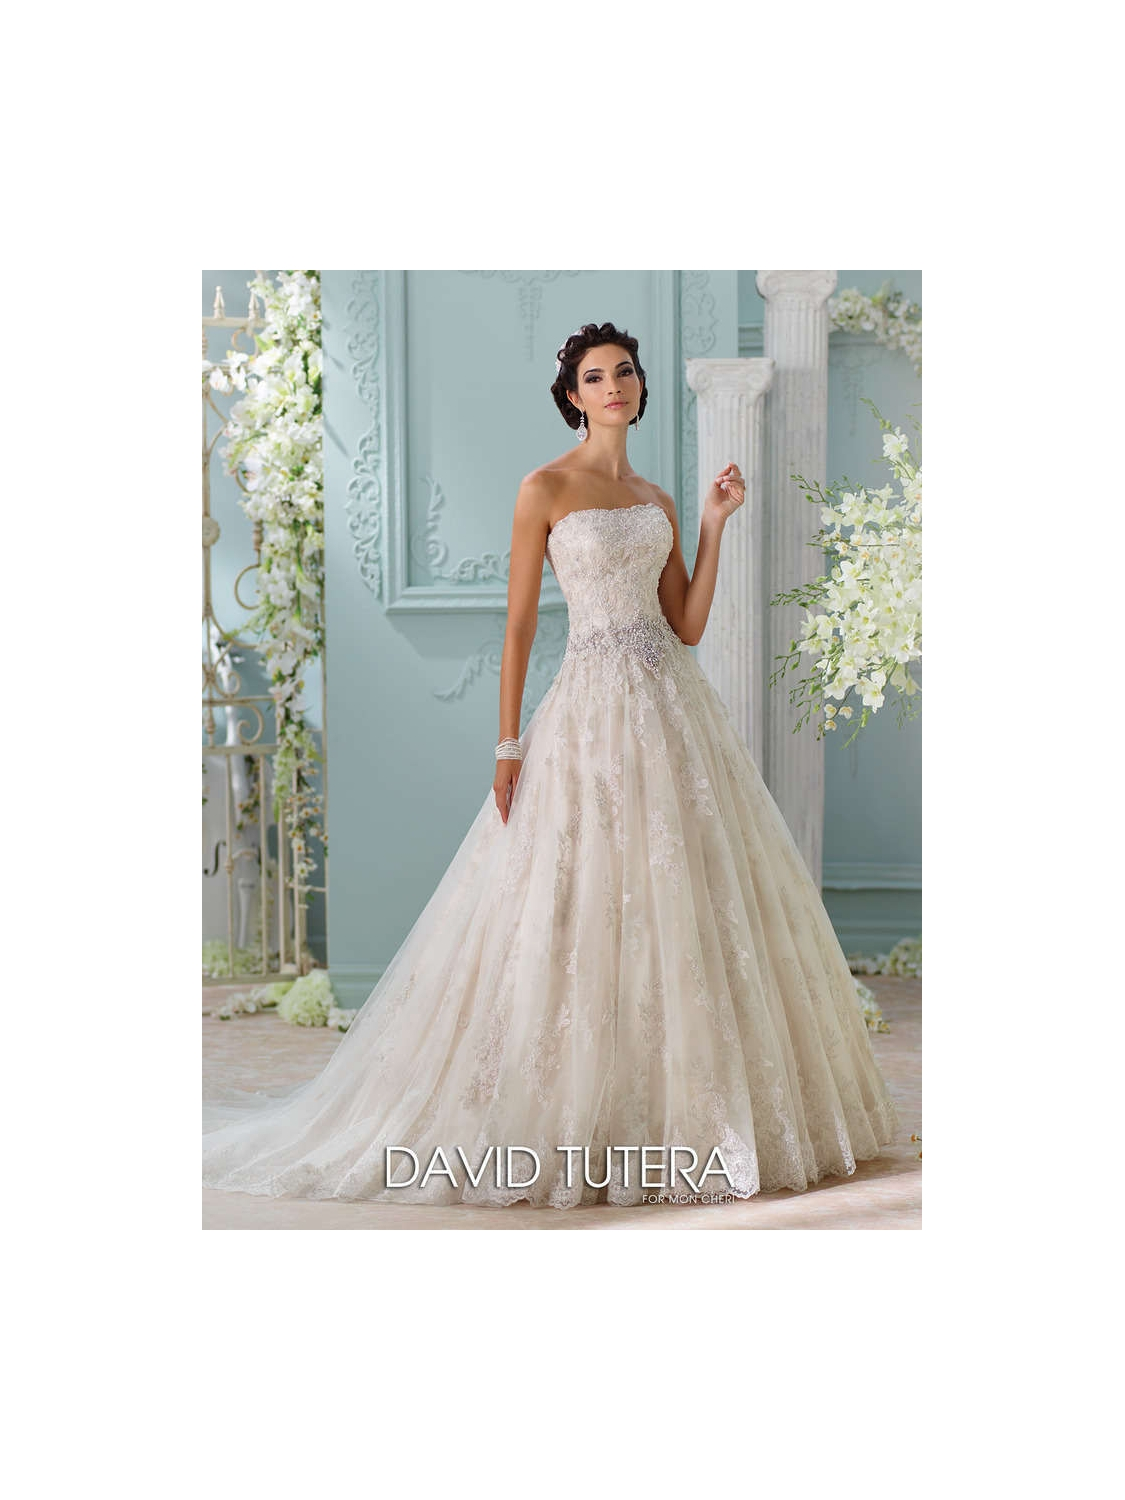 David Tutera for Mon Cheri Wedding Dress Style 116230 | House of Brides